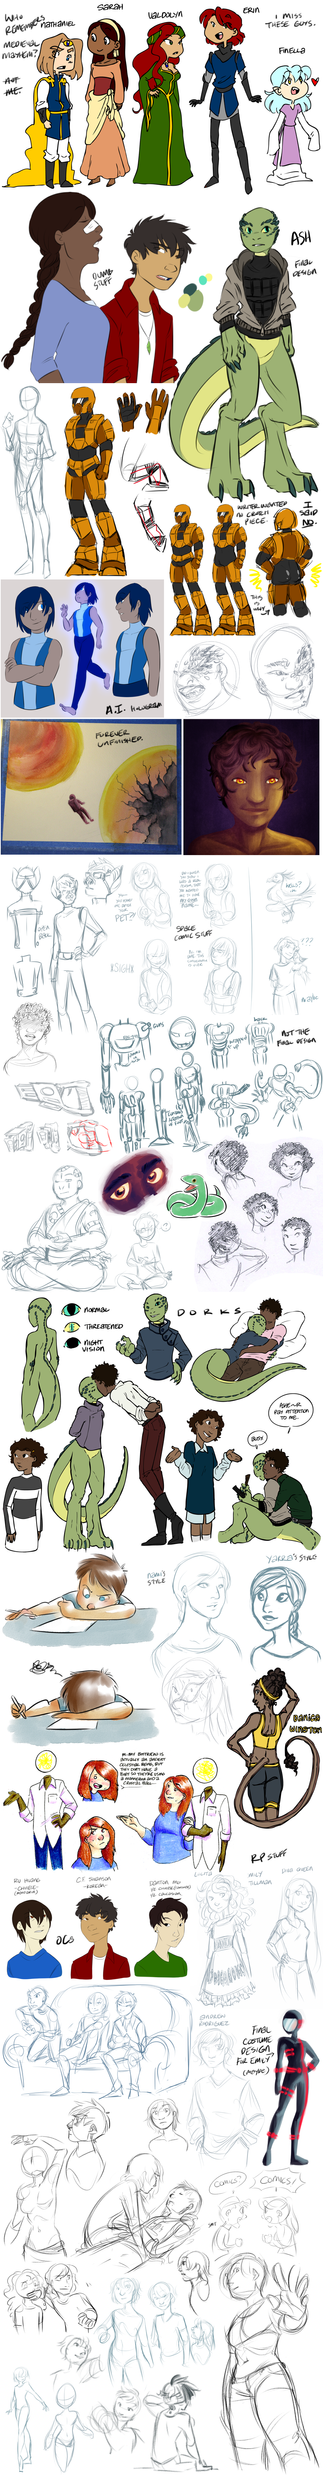 Sketchdump 80 by ratopiangirl